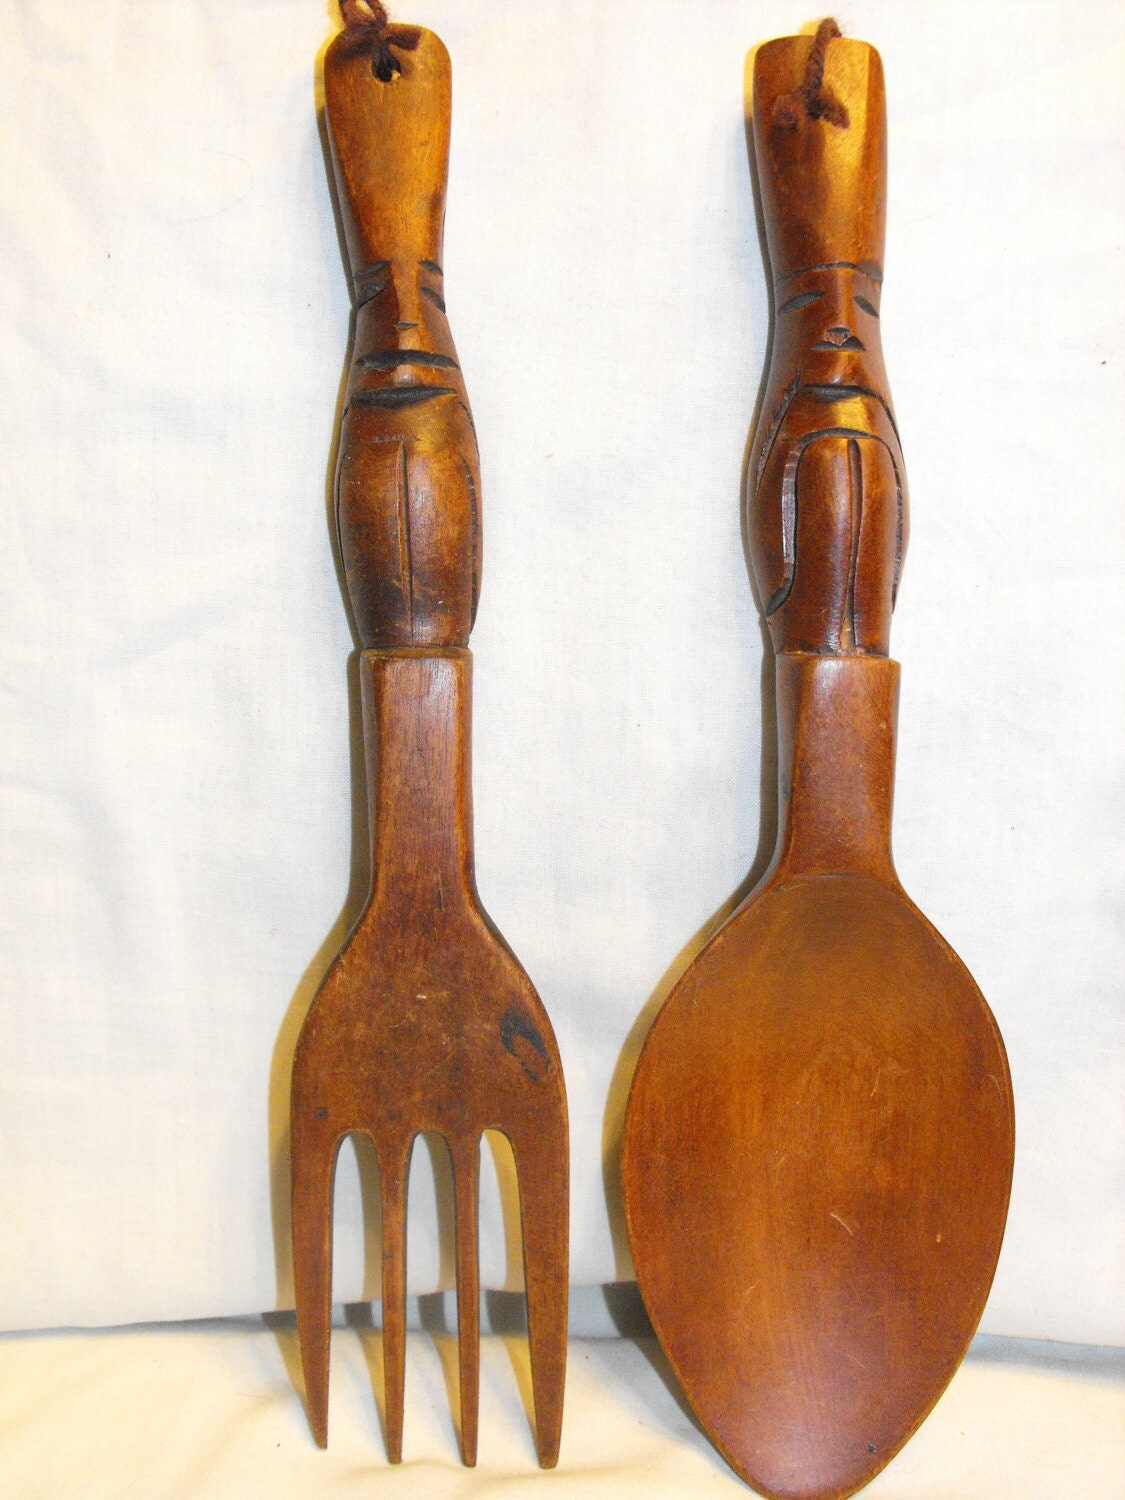 Wall Decor Wooden Fork And Spoon : Vintage wooden fork spoon wall decor by amysacresantiques